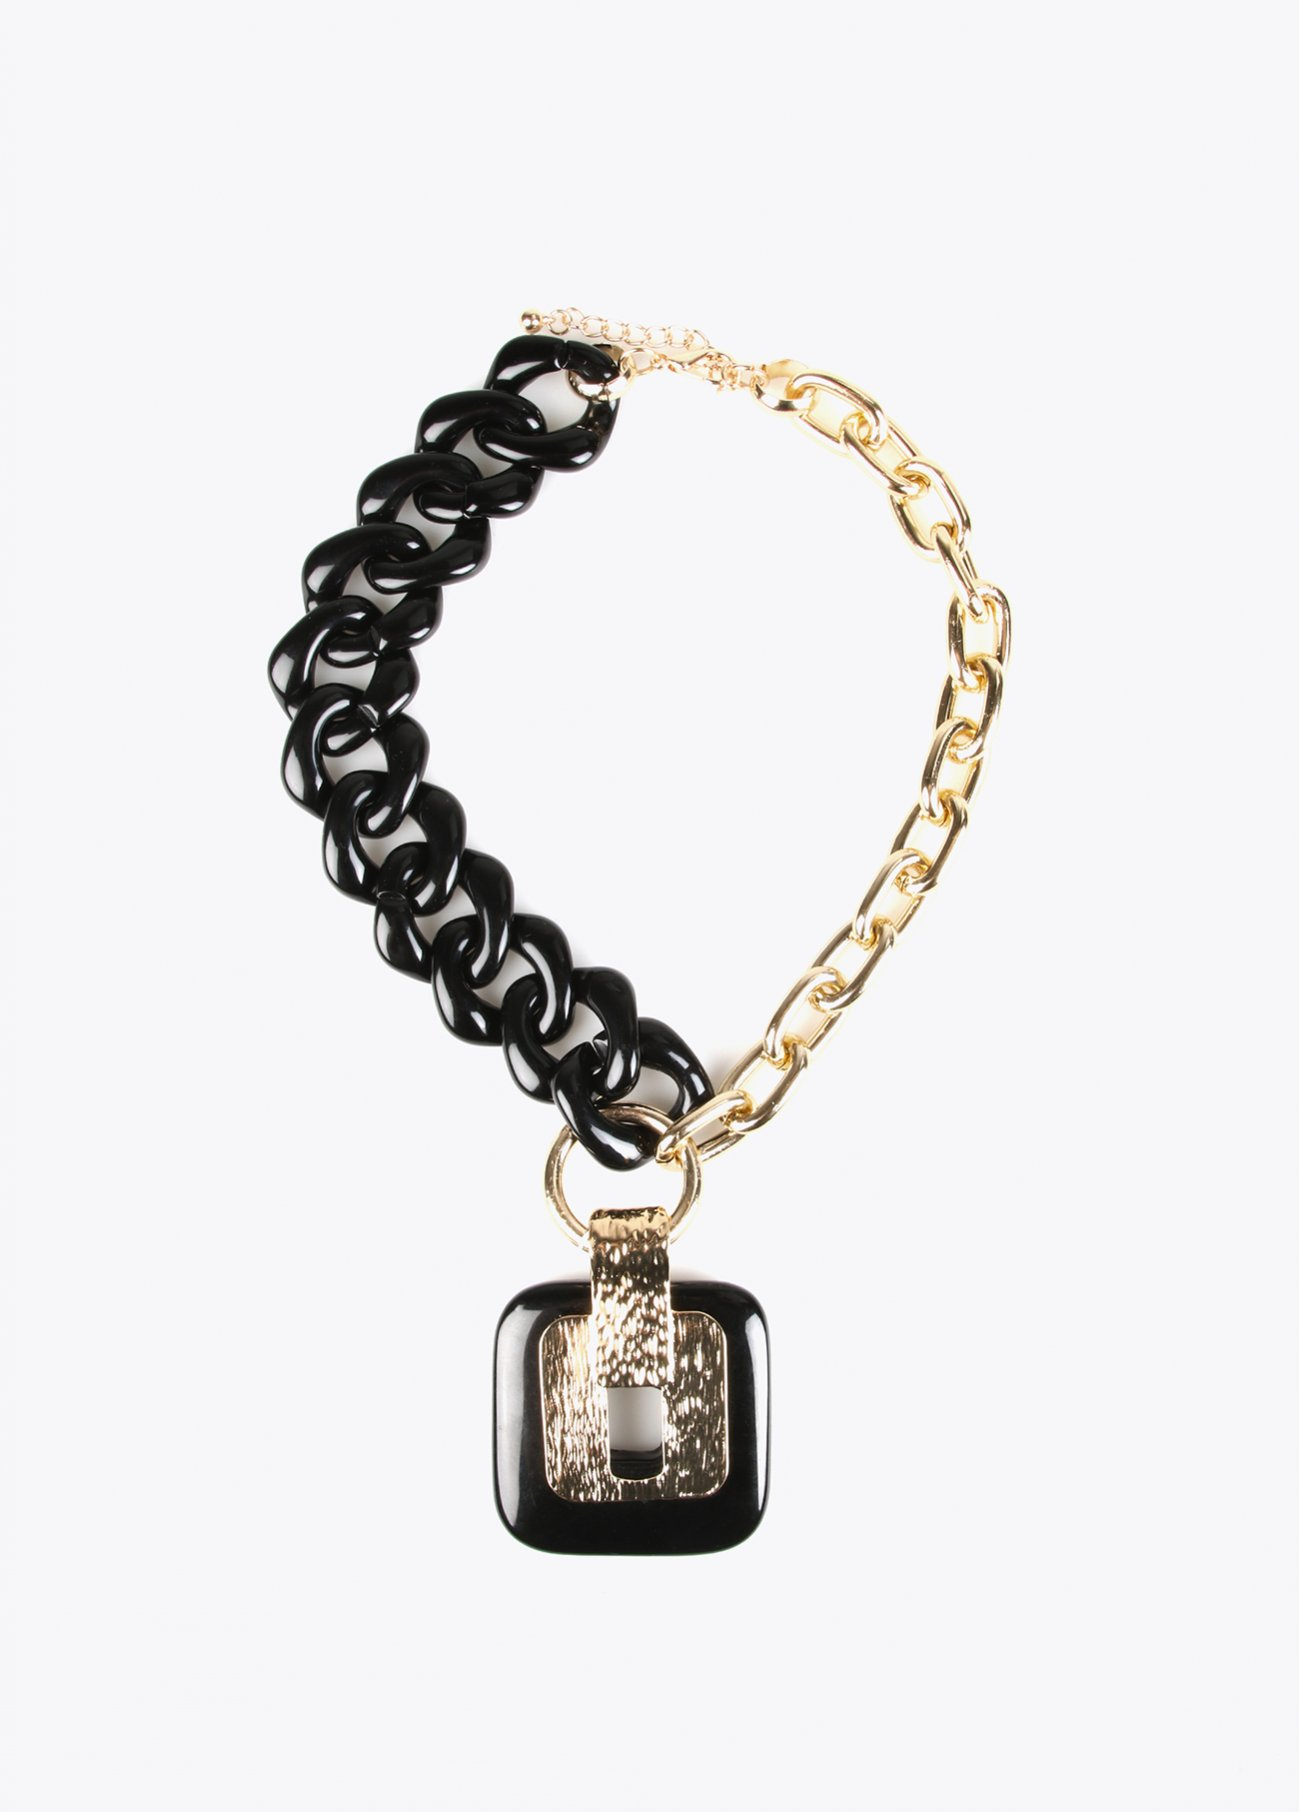 Necklace with golden and black acrylic l